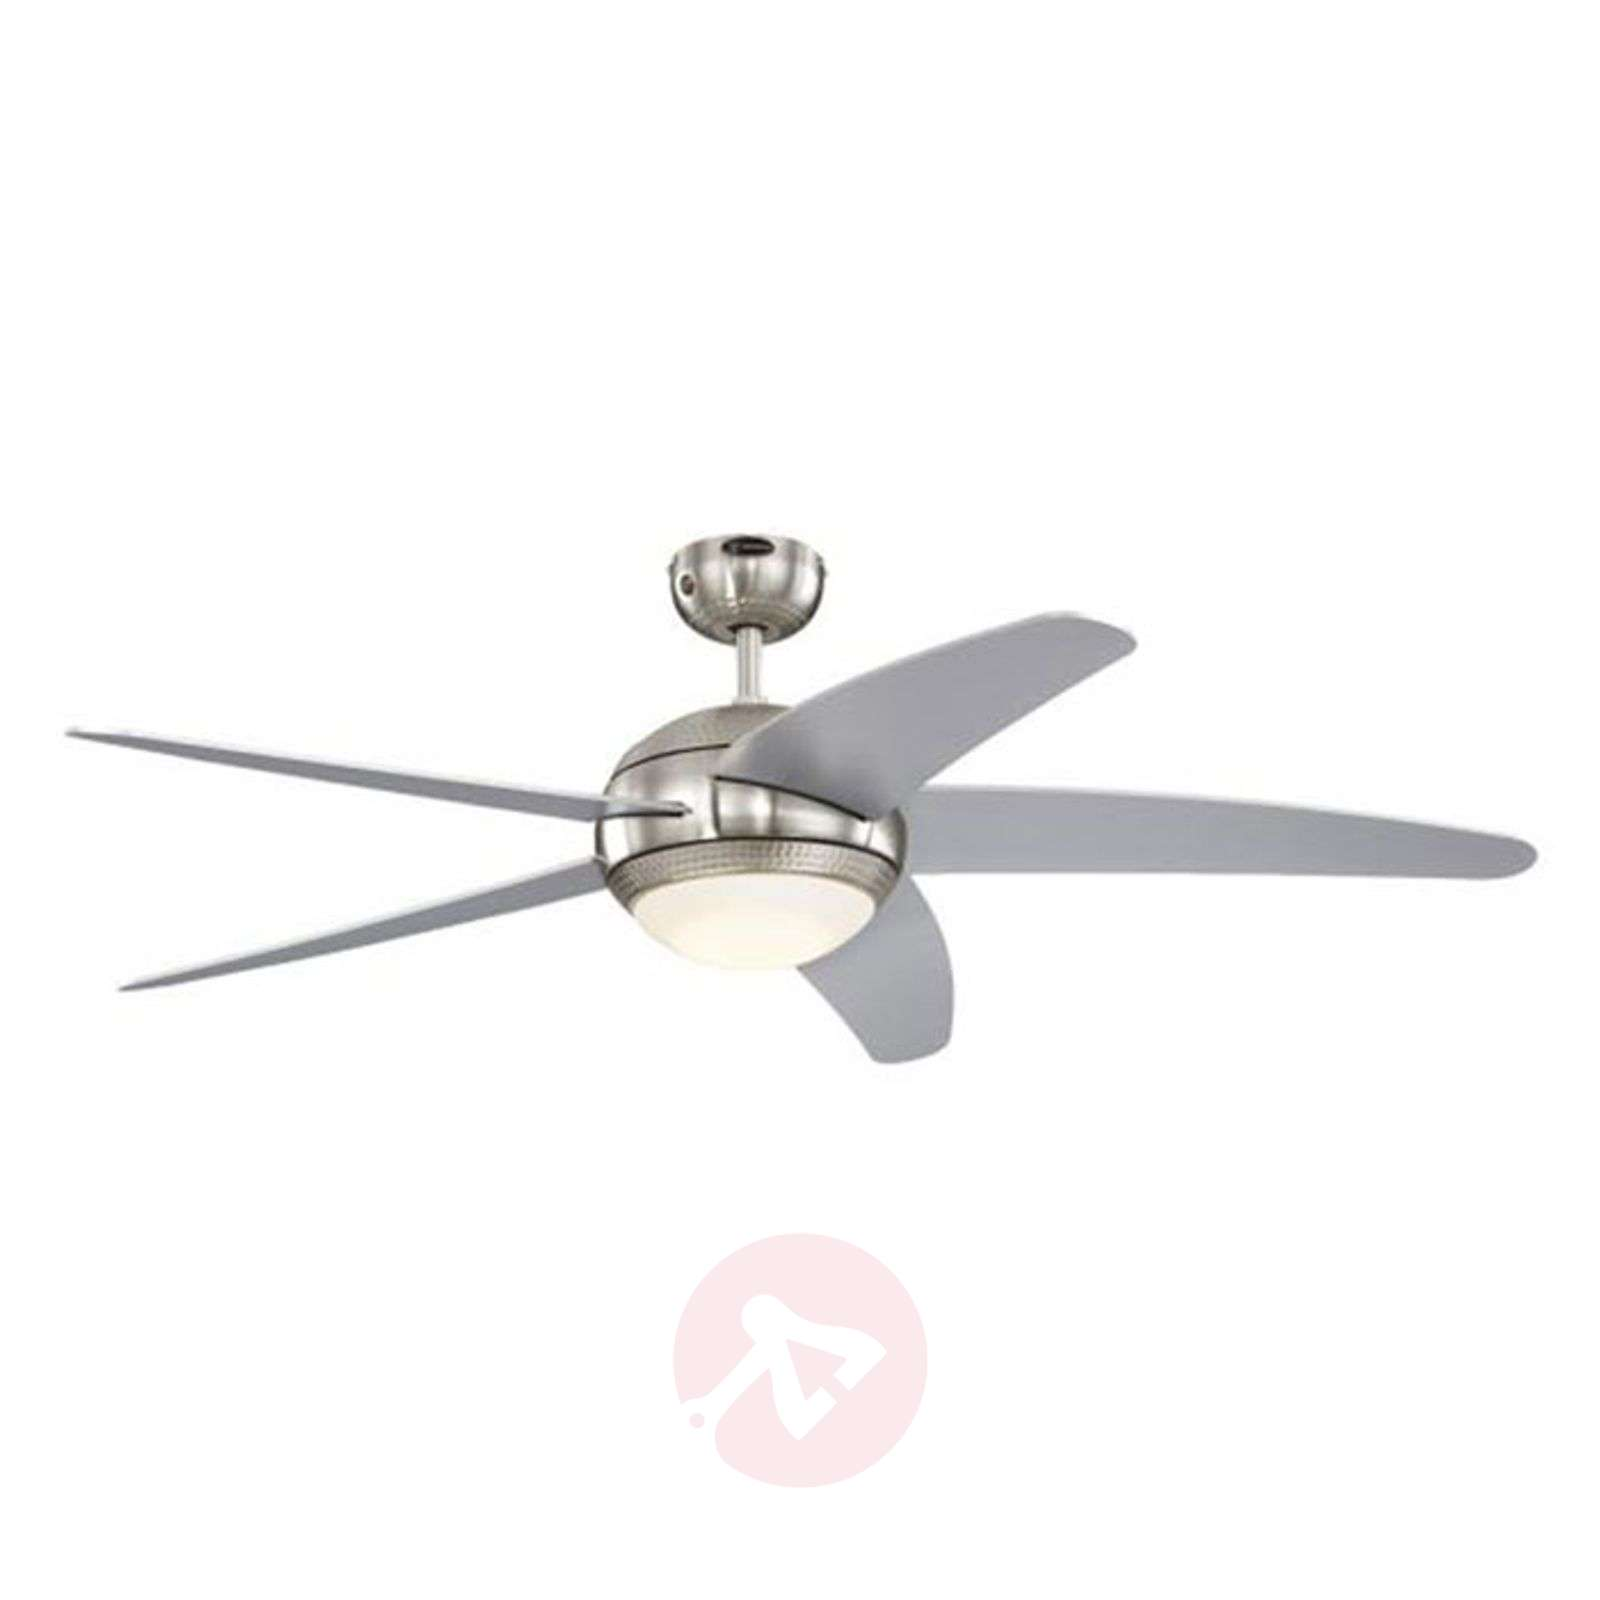 LED ceiling fan Bendan silver-coloured blades-9602289-02